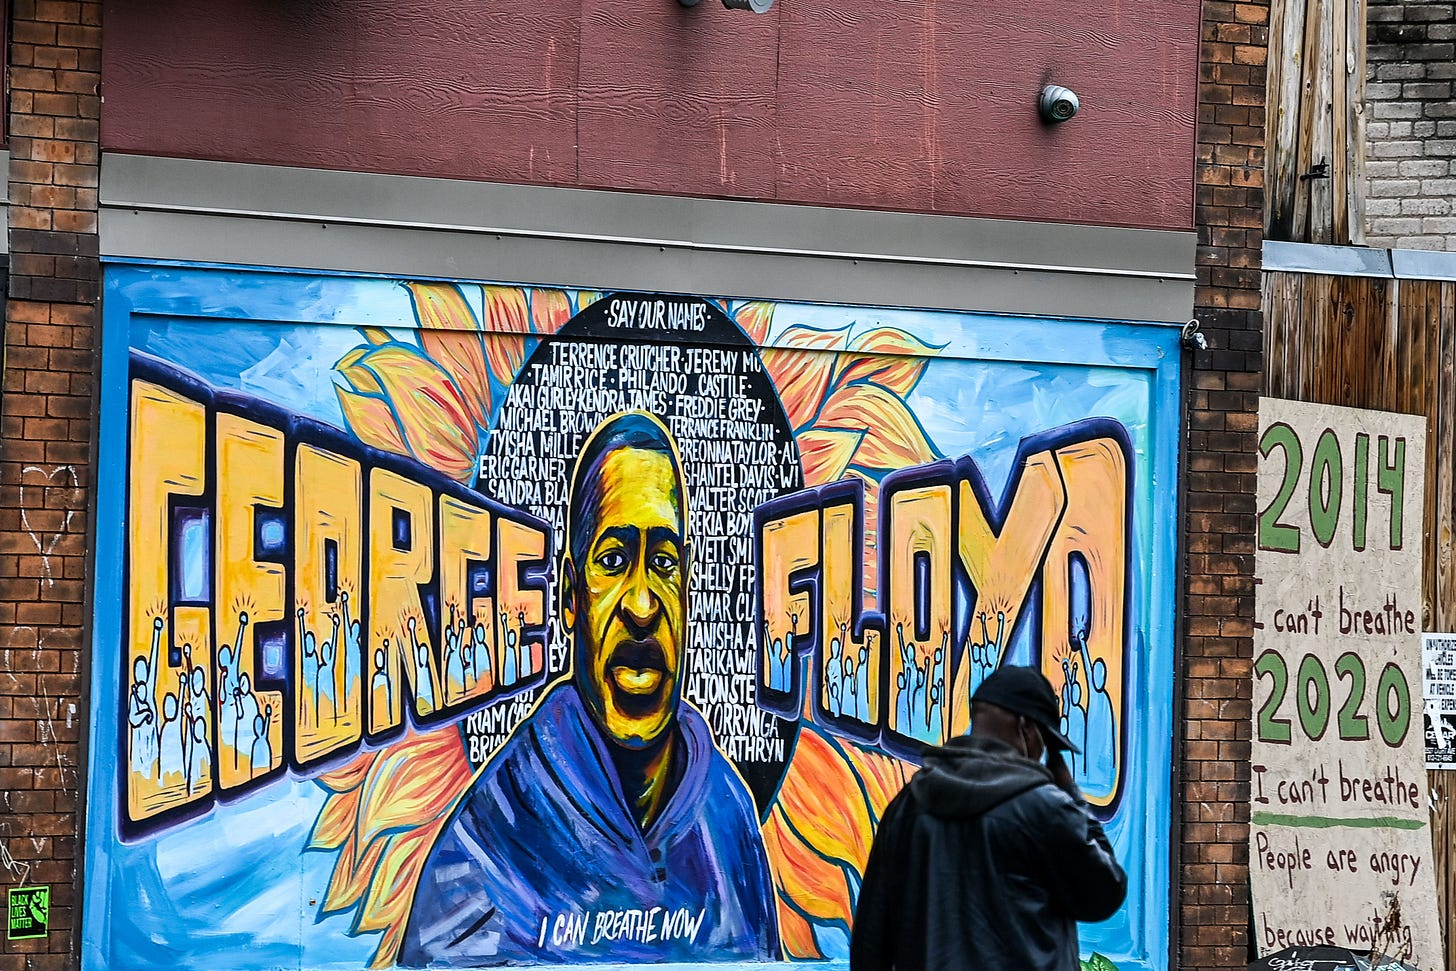 """A man walks past the mural of George Floyd near the makeshift memorial of George Floyd before the third day of jury selection begins in the trial of former Minneapolis Police officer Derek Chauvin who is accused of killing Floyd, in Minneapolis, Minnesota on March 10, 2021. - The first jurors were selected on March 9, 2021 in the high-profile trial of the white police officer accused of killing George Floyd, an African-American man whose death laid bare racial wounds in the United States and sparked """"Black Lives Matter"""" protests across the globe. Former Minneapolis Police Department officer Derek Chauvin is facing charges of second-degree murder and manslaughter in connection with Floyd's May 25 death, which was captured by bystanders on smartphone video. (Photo by CHANDAN KHANNA / AFP) (Photo by CHANDAN KHANNA/AFP via Getty Images)"""